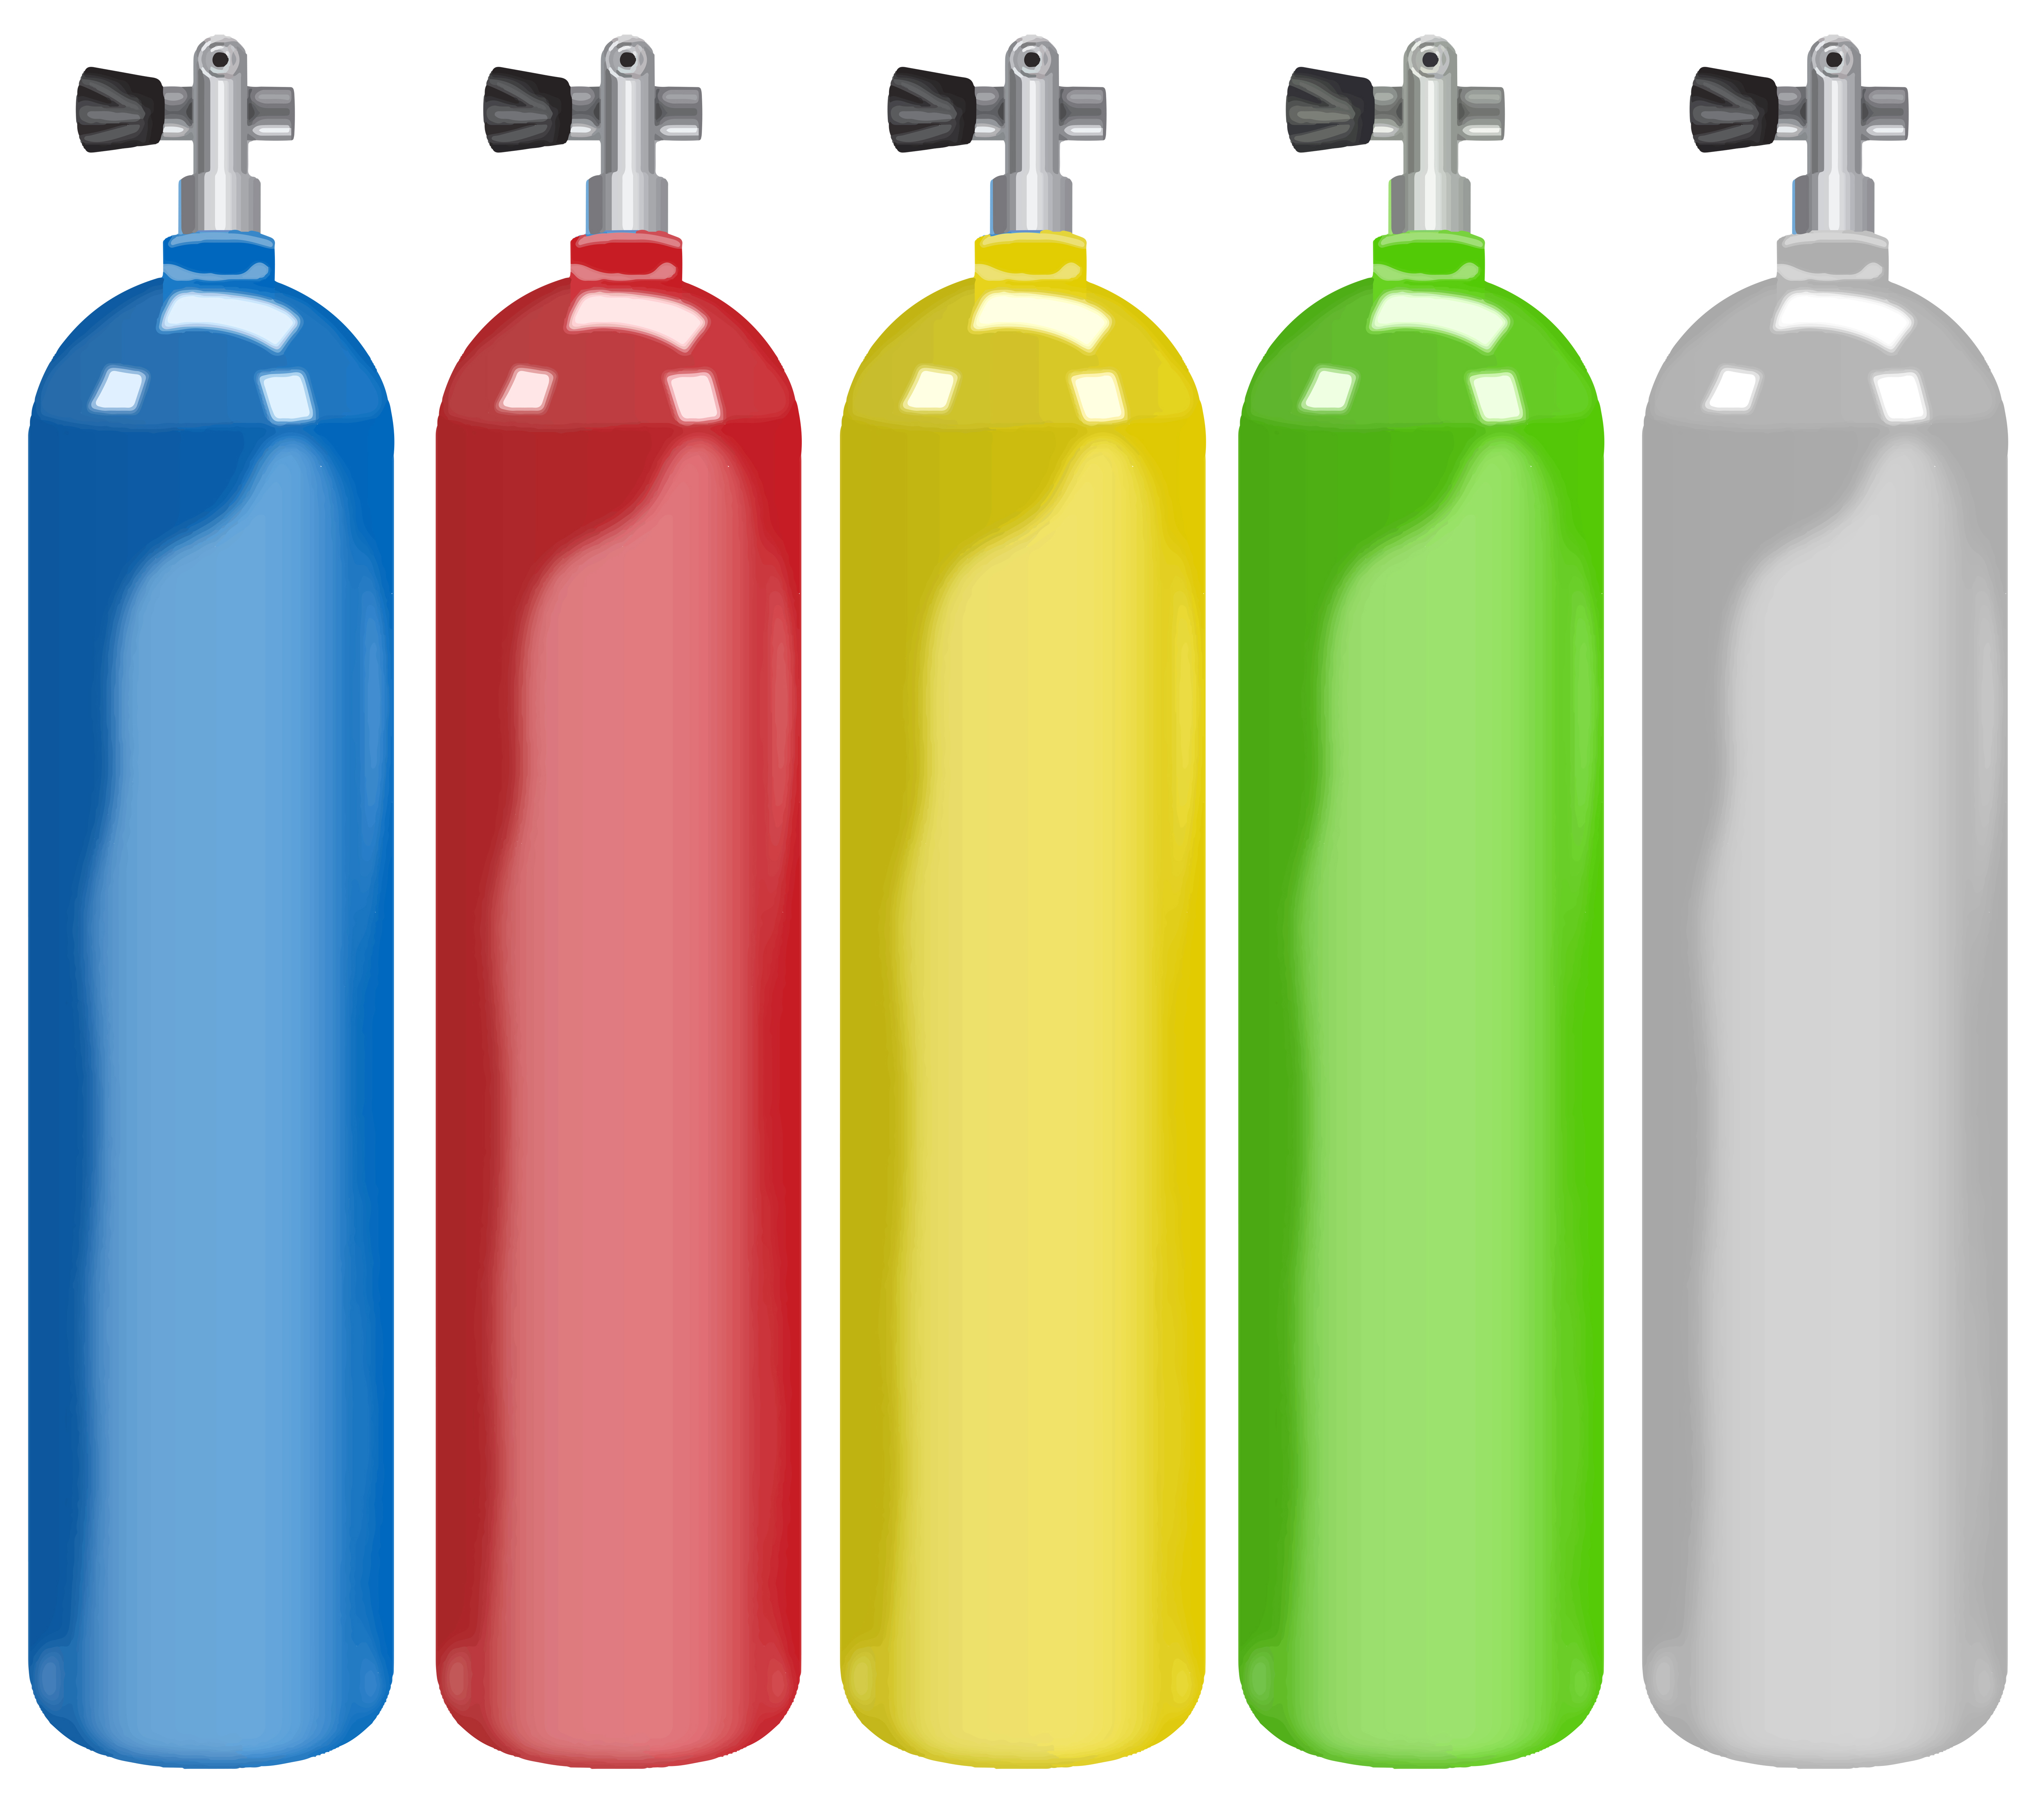 Oxygen Tank For Sale >> What To Do With Your Old Oxygen Tanks Aed Superstore Blog